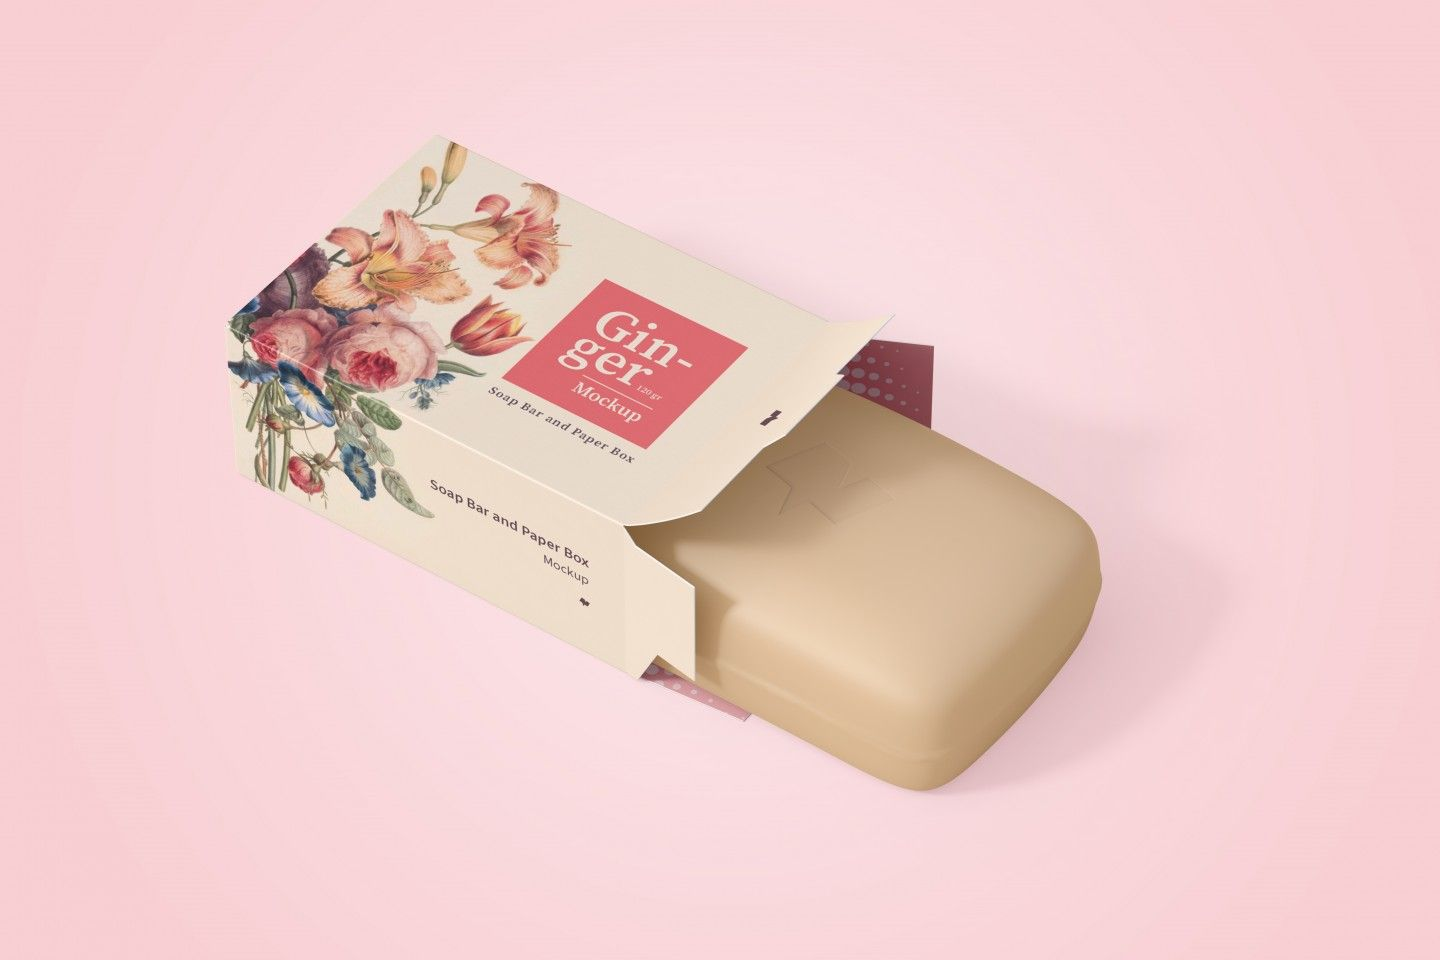 Soap Bar And Paper Box Mockup Top Side View In 2021 Bar Soap Packaging Bar Soap Packaging Design Soap Packaging Design